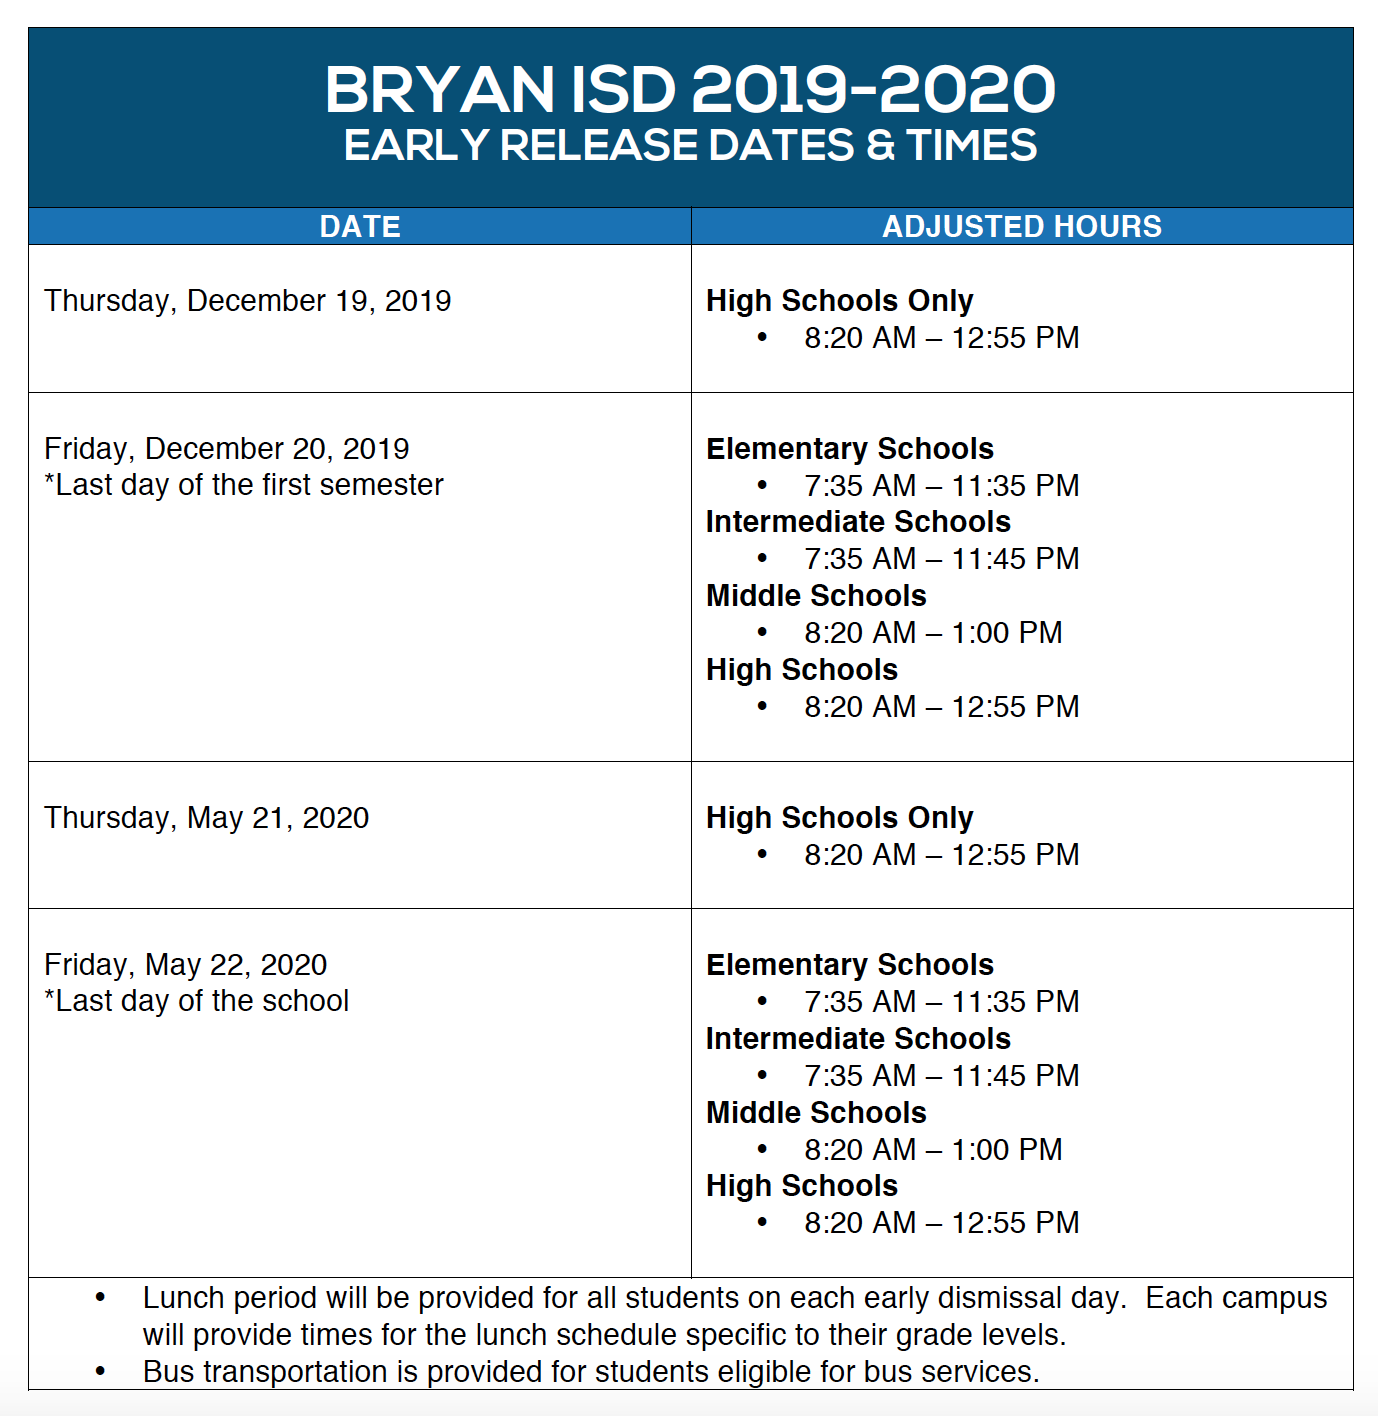 2019-2020 Campus Start/End Times - Miscellaneous - Bryan